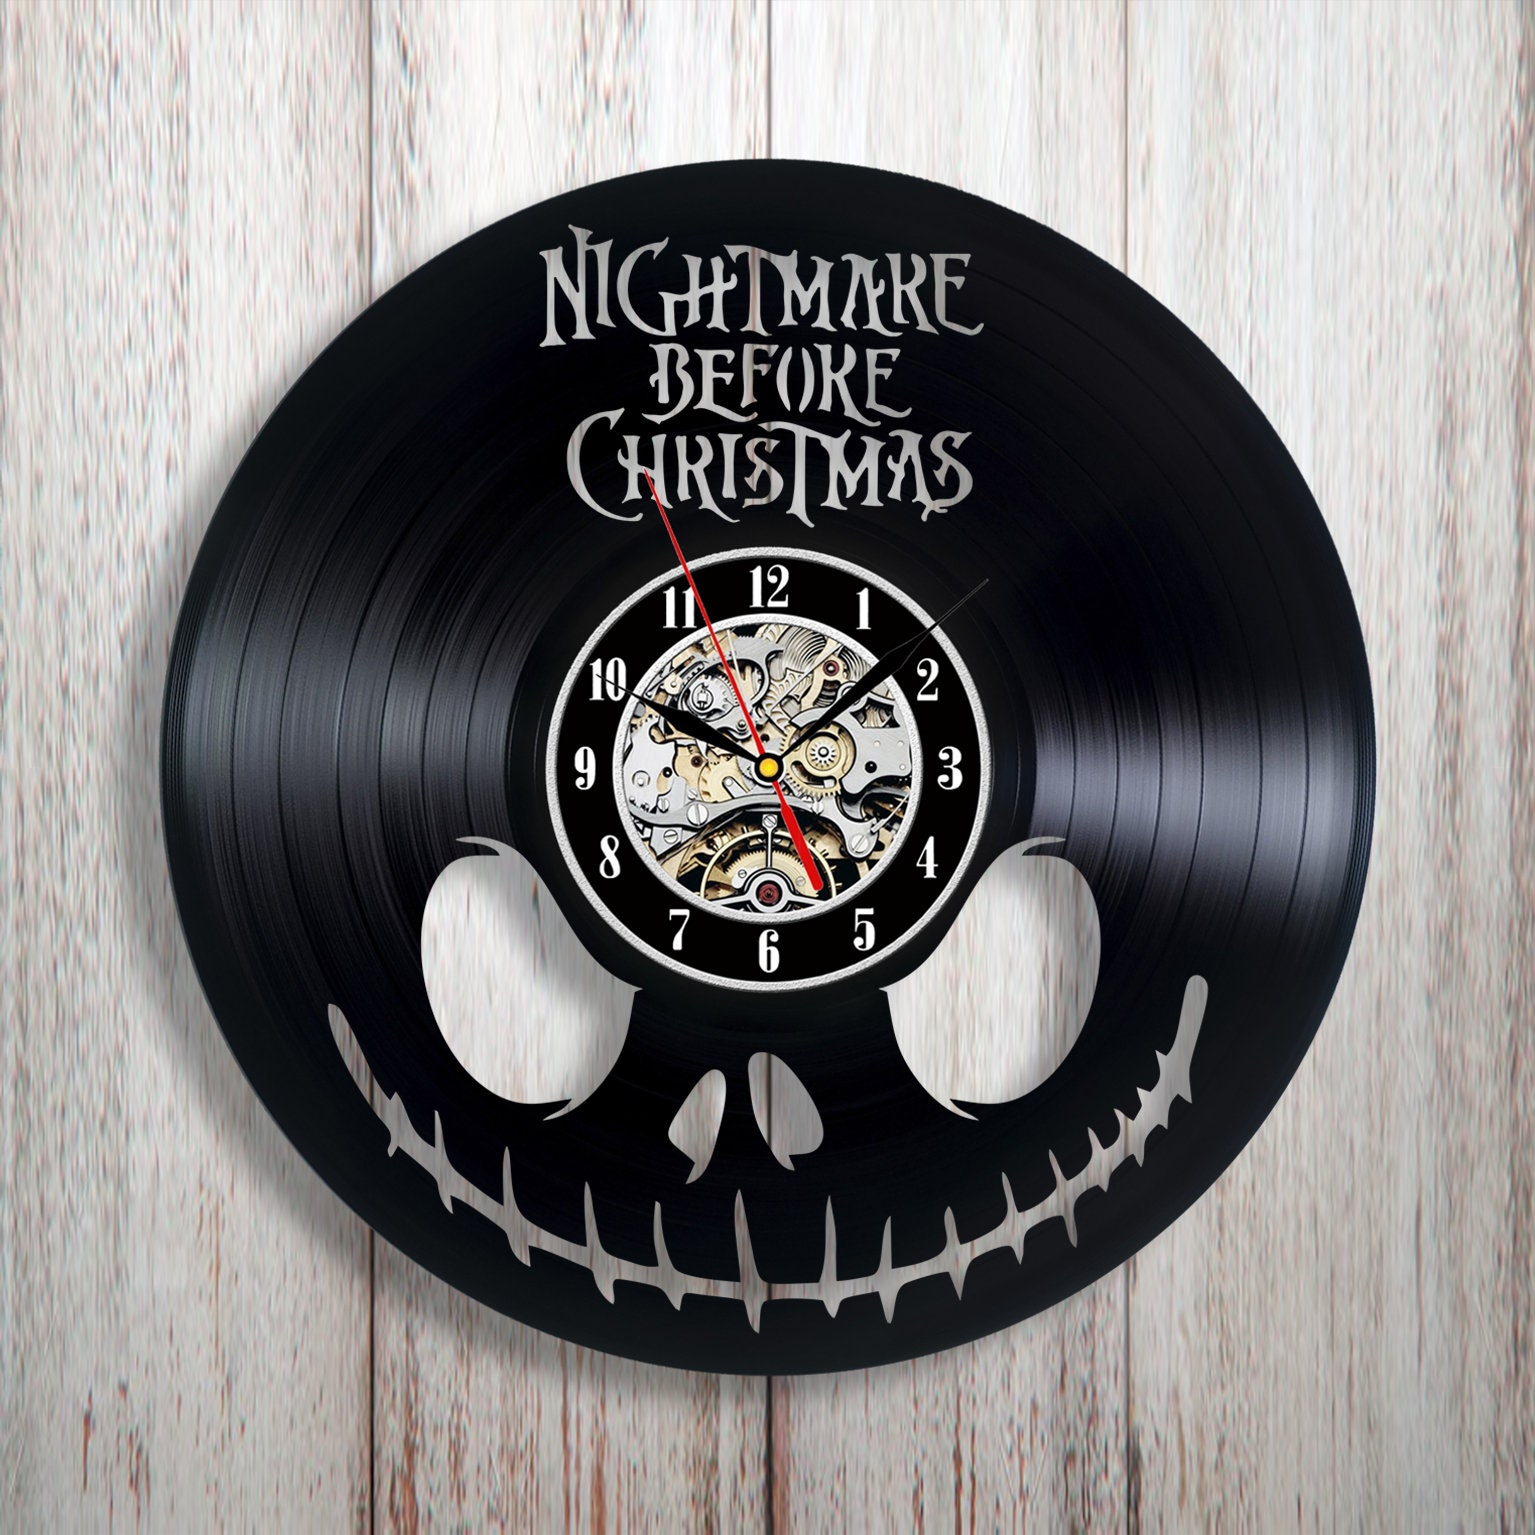 Nightmare Before Christmas Wall Clock Vinyl Wall Clock Nbc Fan Art Wall Decor Christmas Gift Idea Halloween Gift Gift For Kid Unique